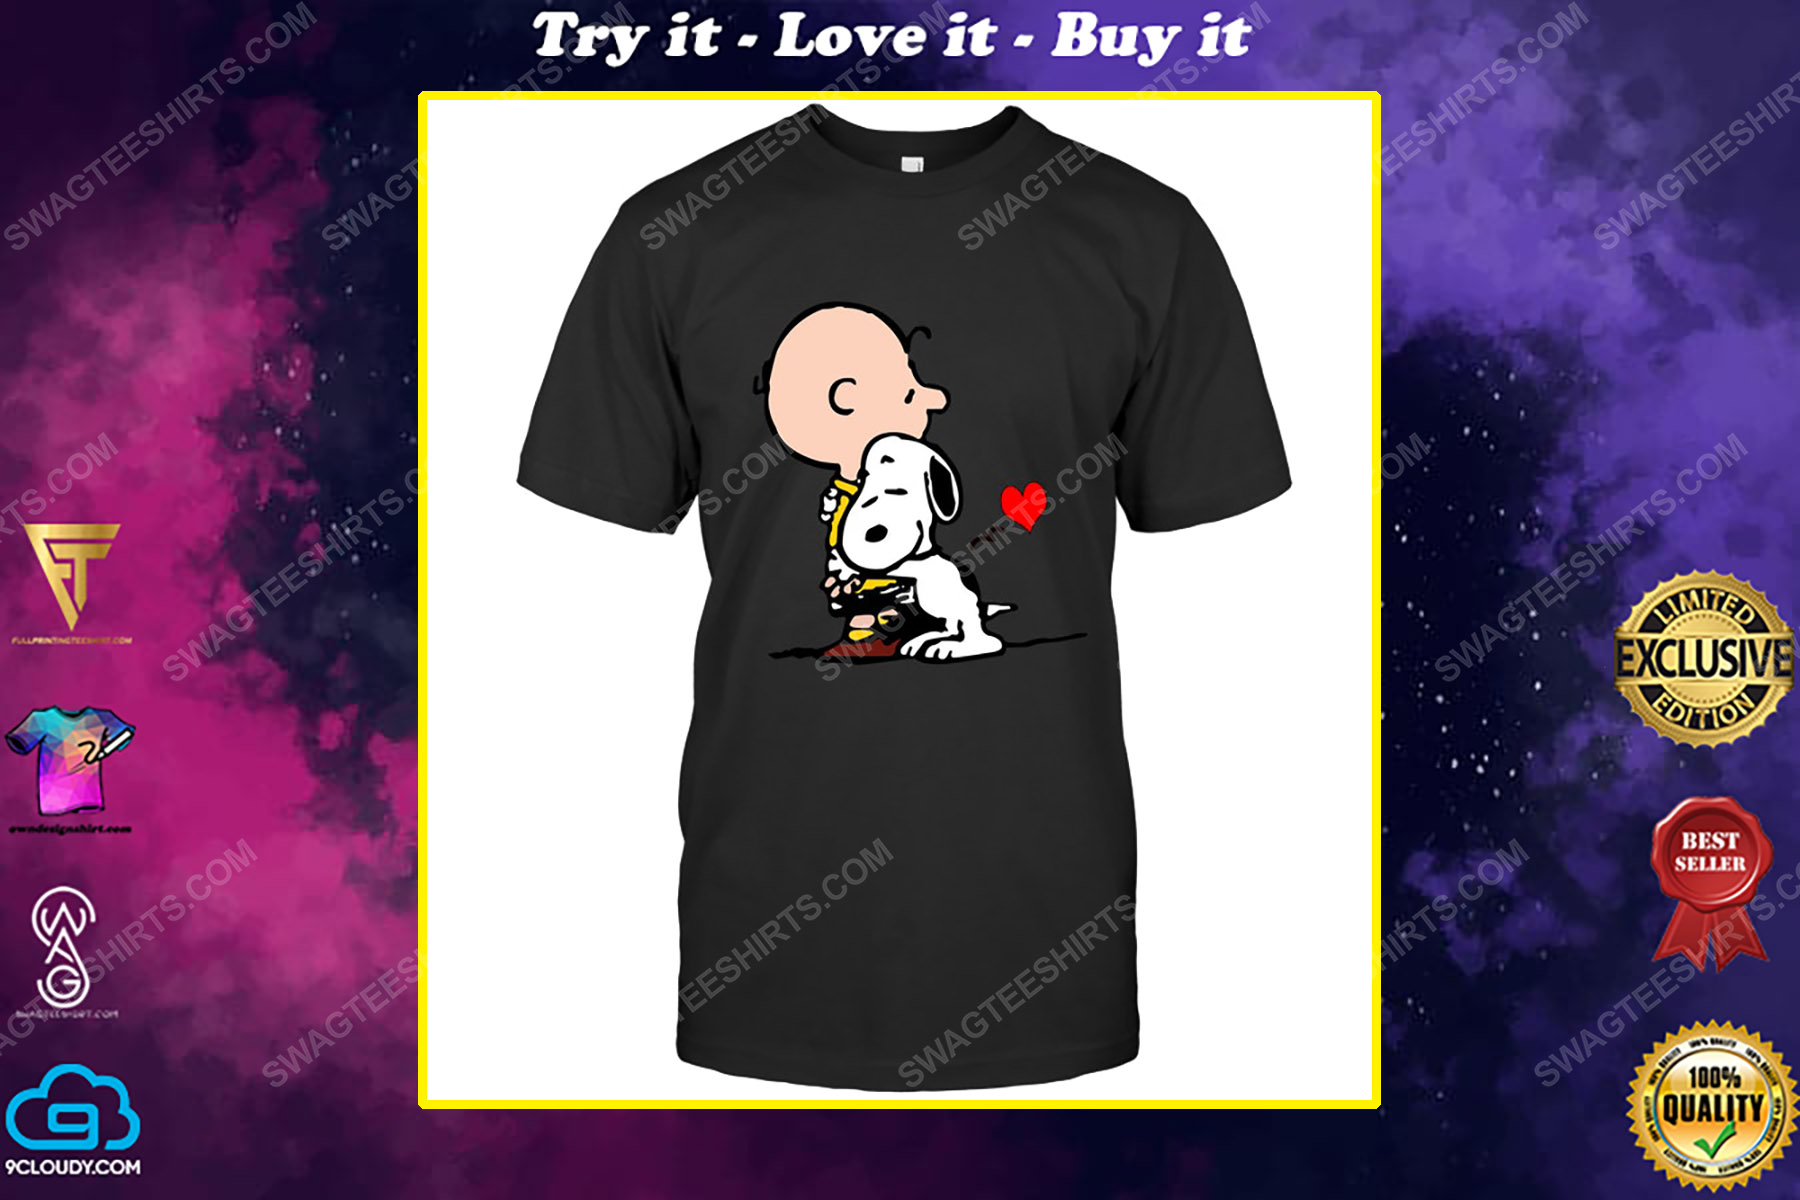 The peanuts snoopy and charlie brown love shirt